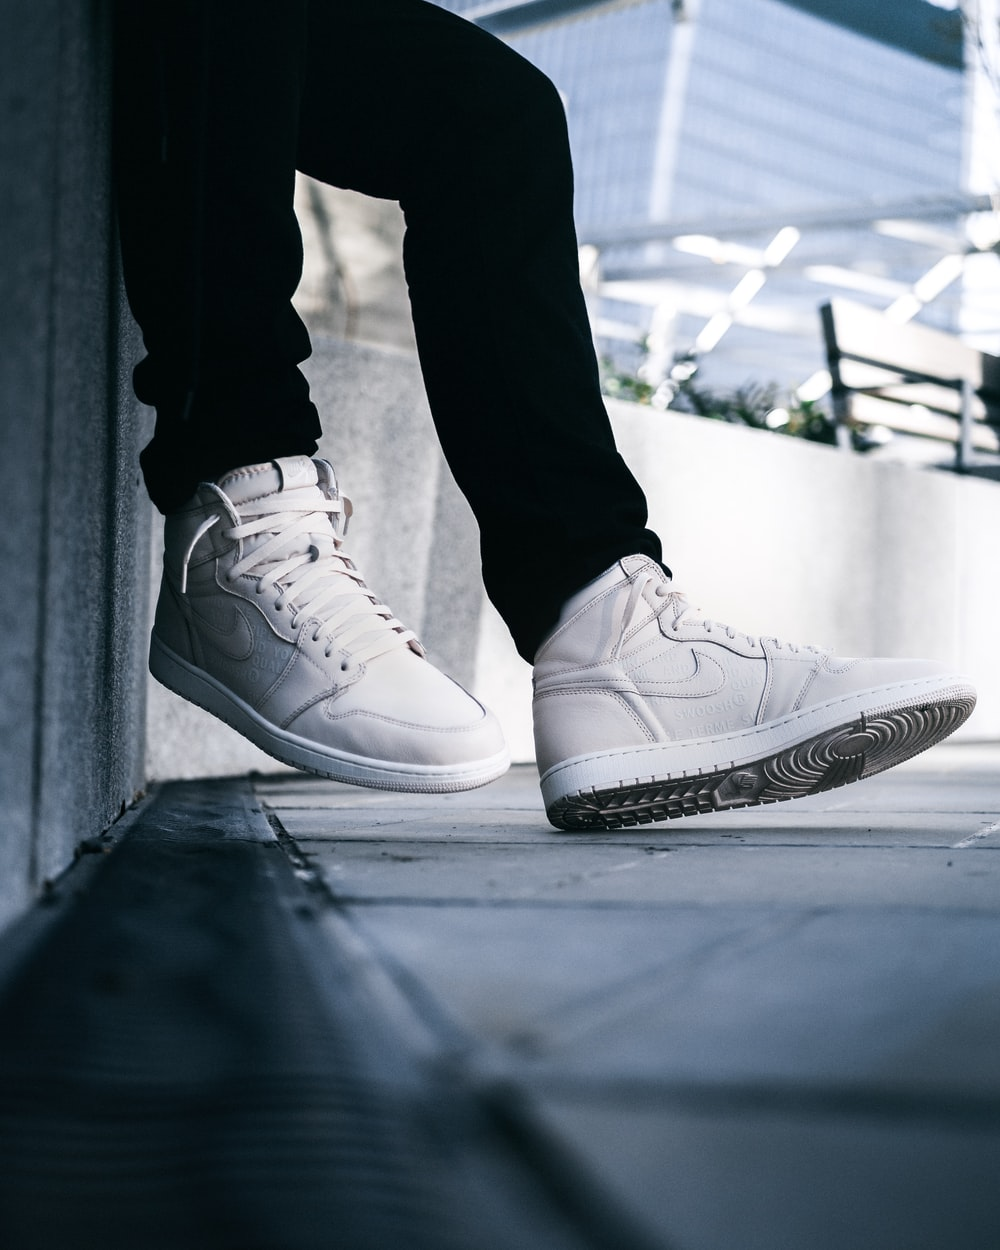 person wearing white Nike mid-rise lace-up sneakers